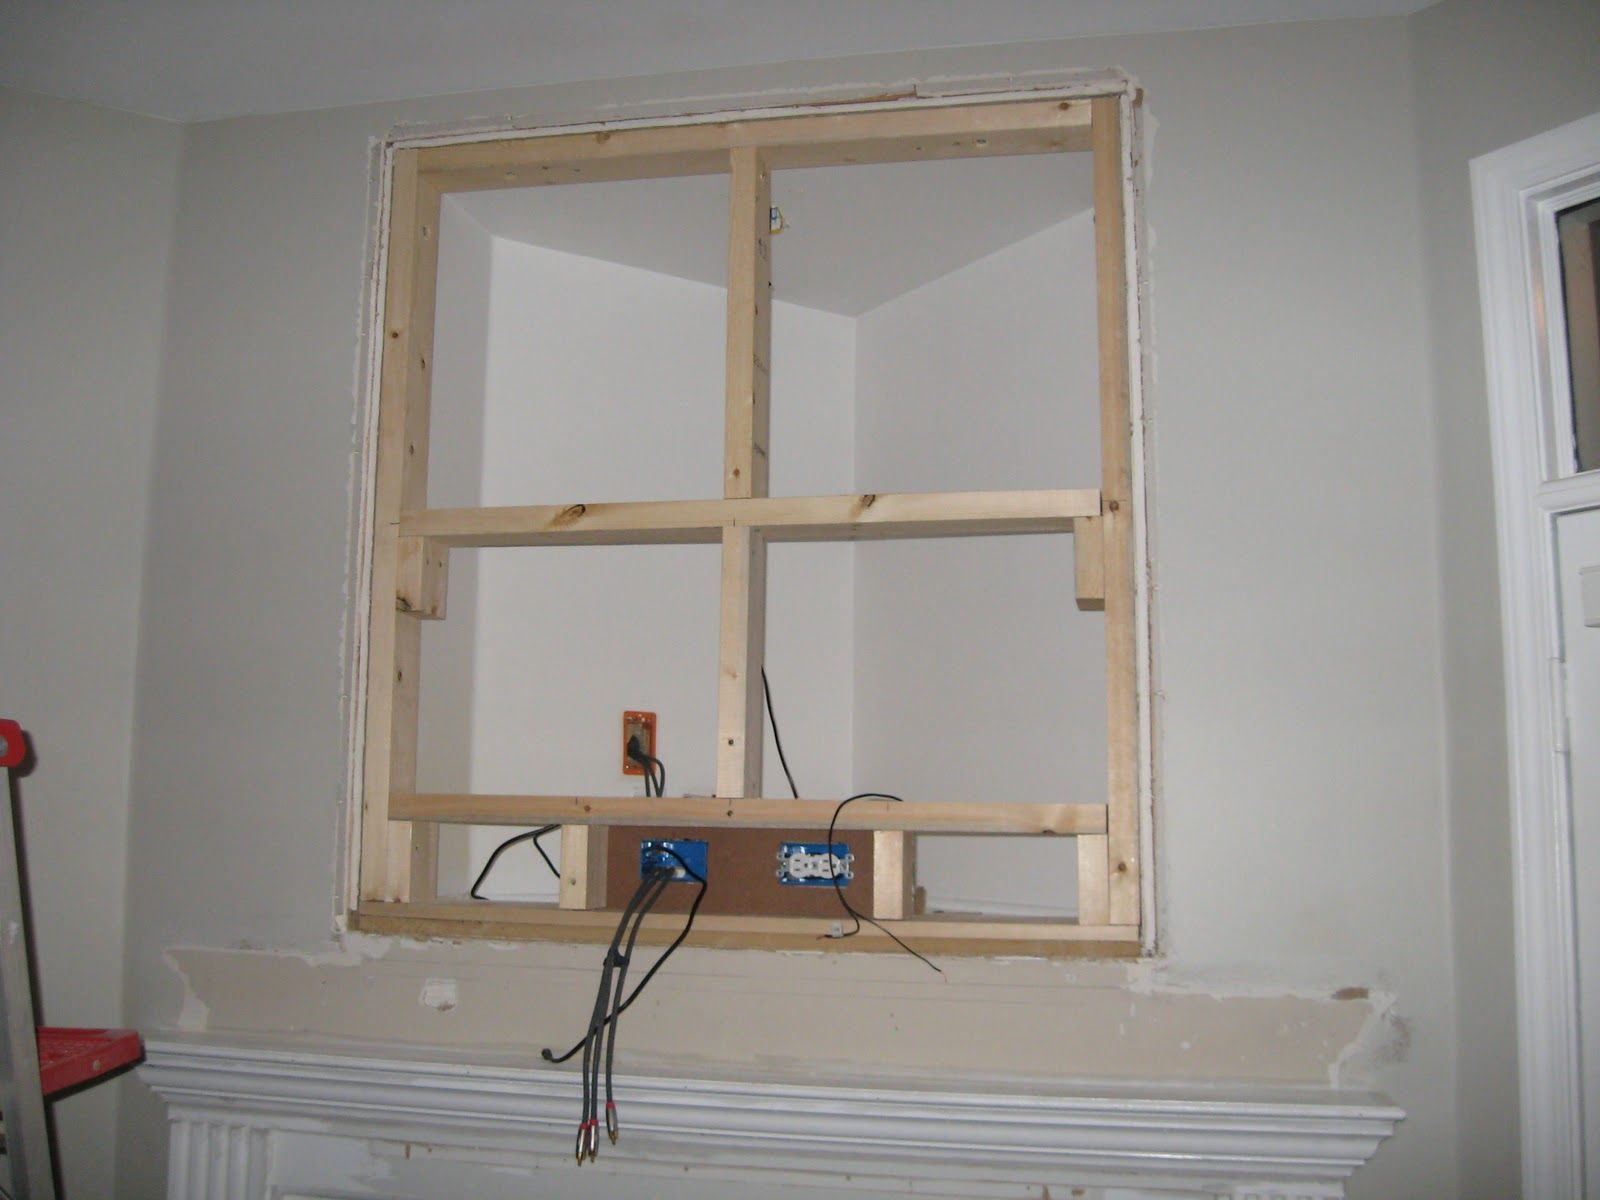 How To Fill In The Tv Nook Over The Fireplace For The